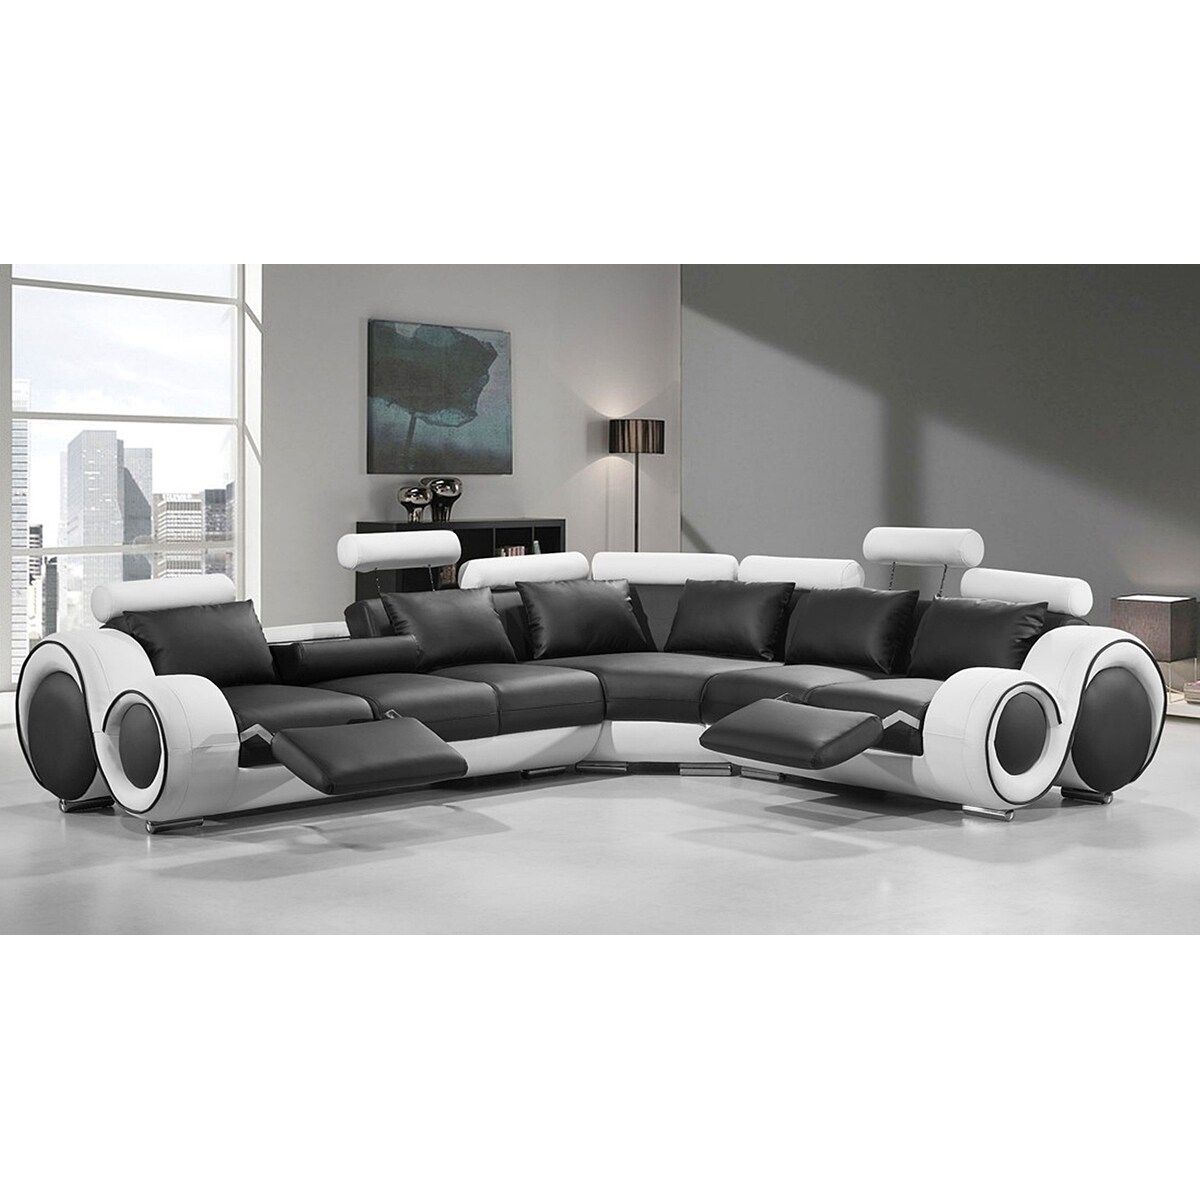 Renaissance Black White Leather L Shaped Sofa With Rounded Armrests Free Shipping Today 17309849